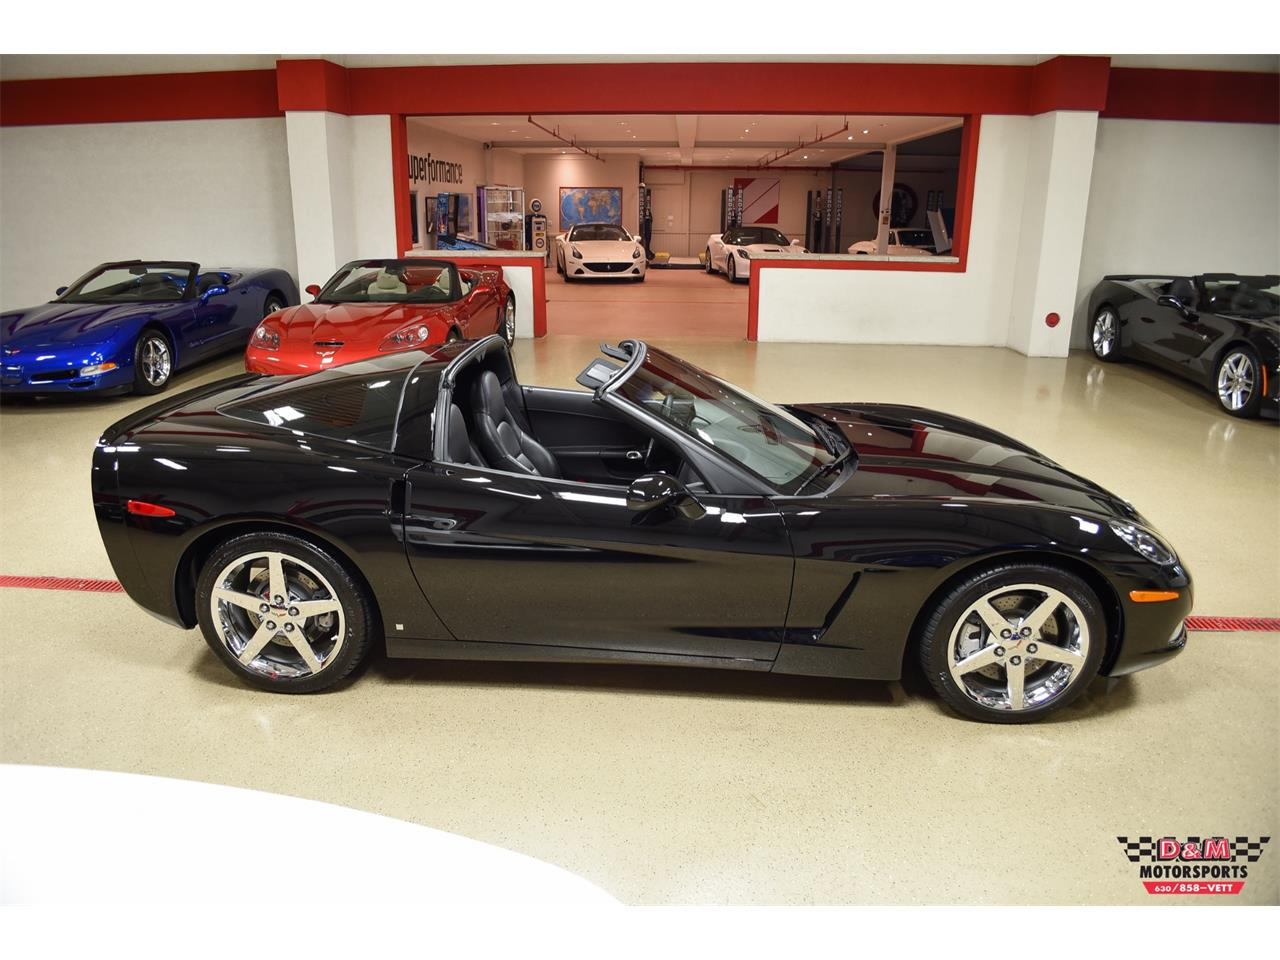 2008 Chevrolet Corvette (CC-1416166) for sale in Glen Ellyn, Illinois